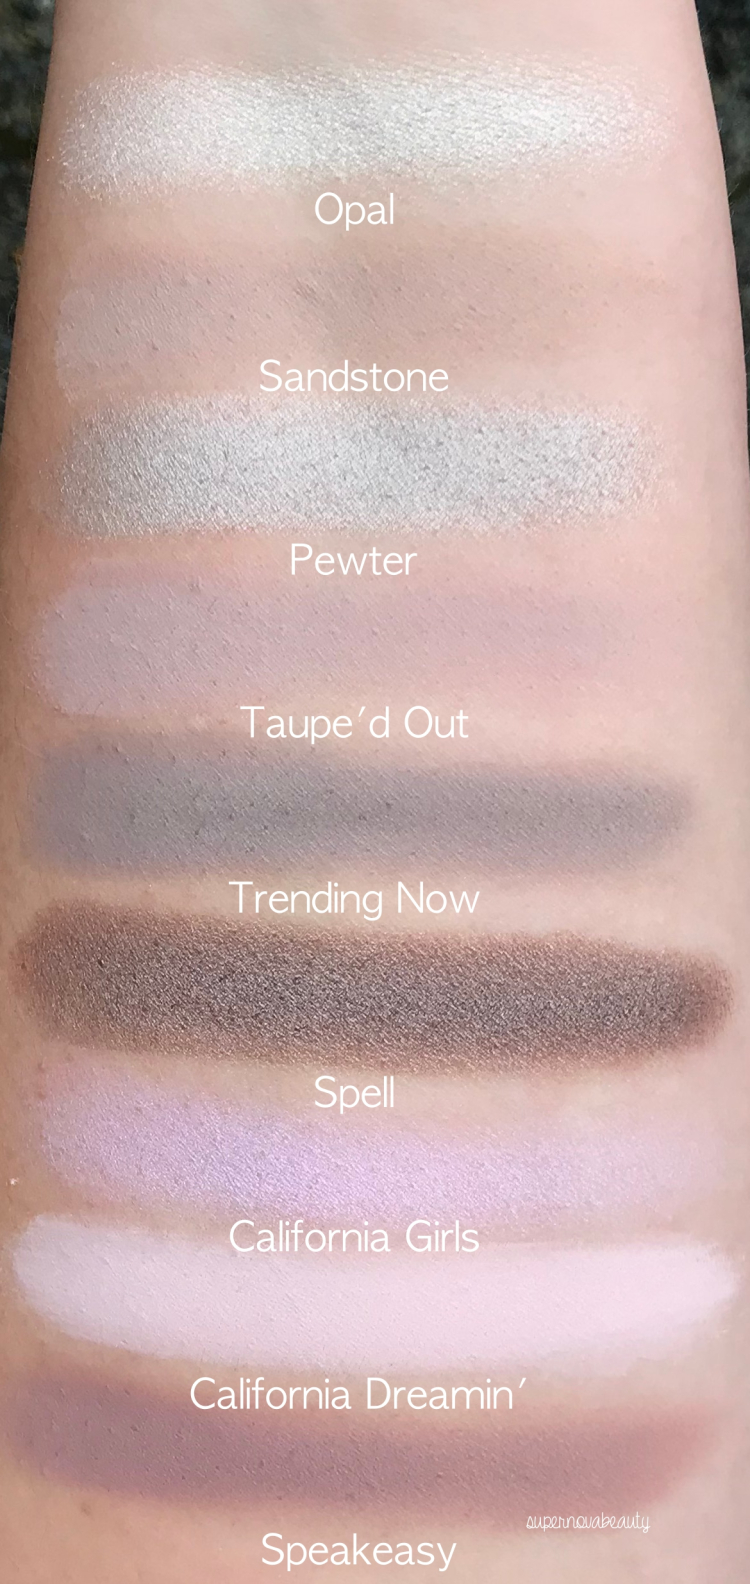 stilazzi-swatches-1